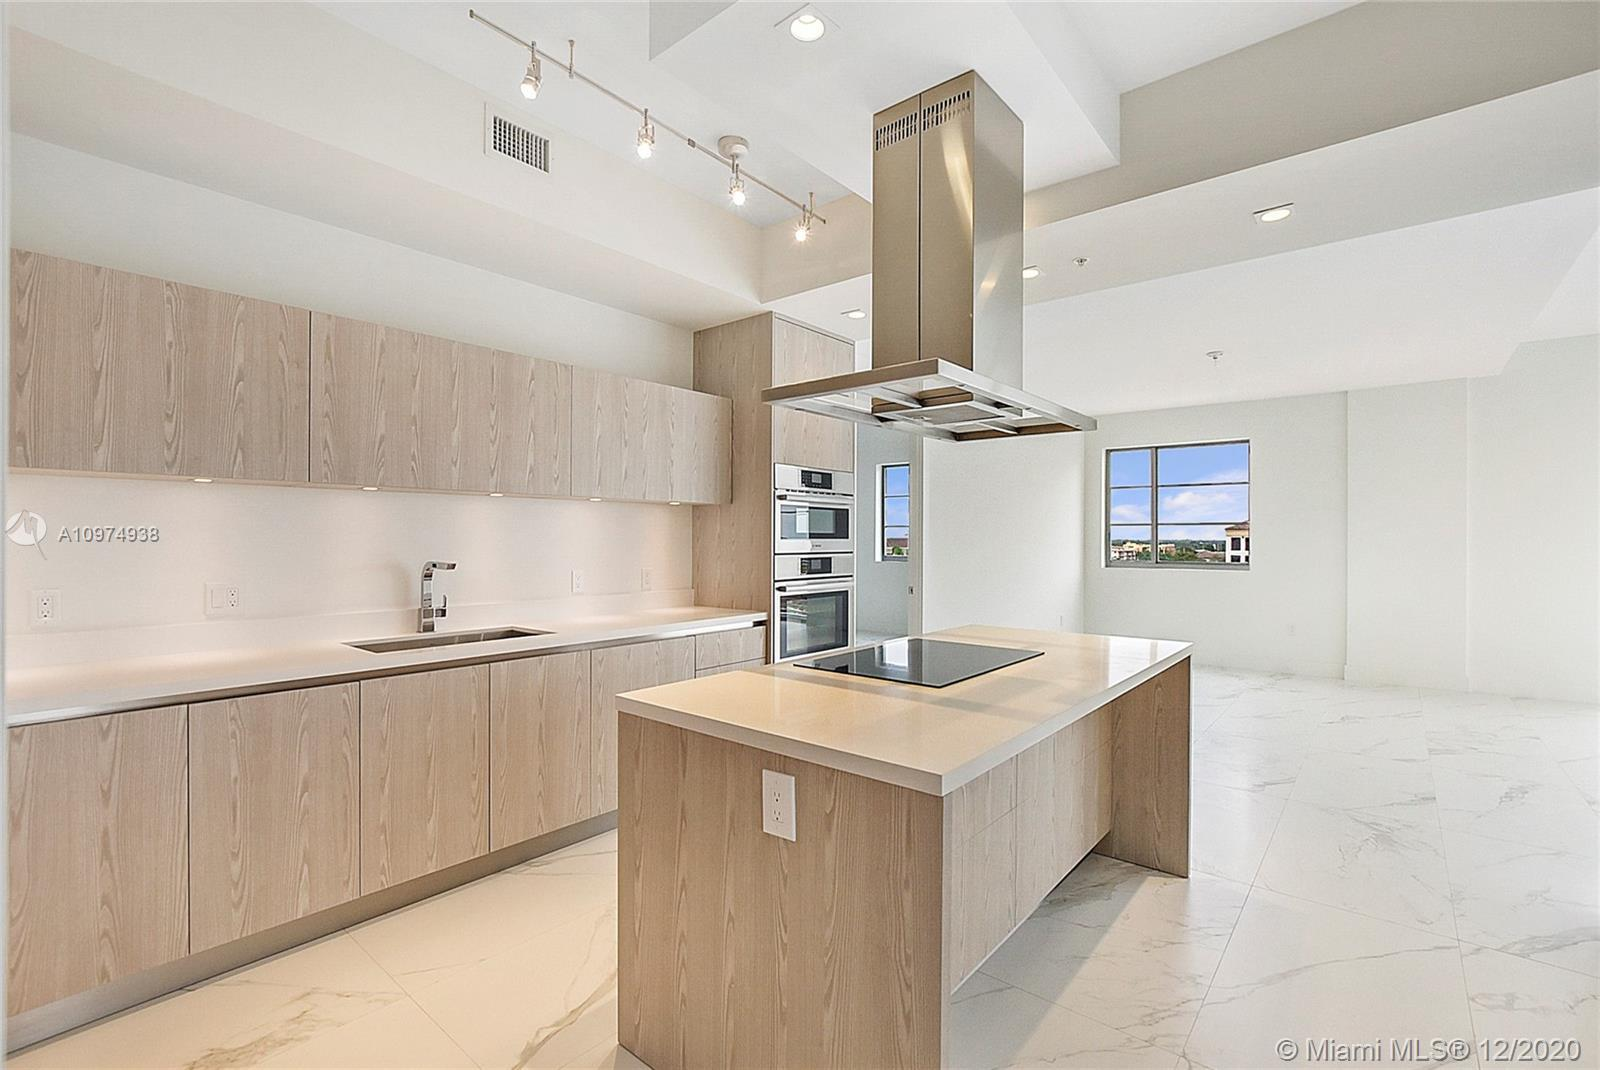 Brand new construction available in the best location in Downtown Boca Raton with North West exposur